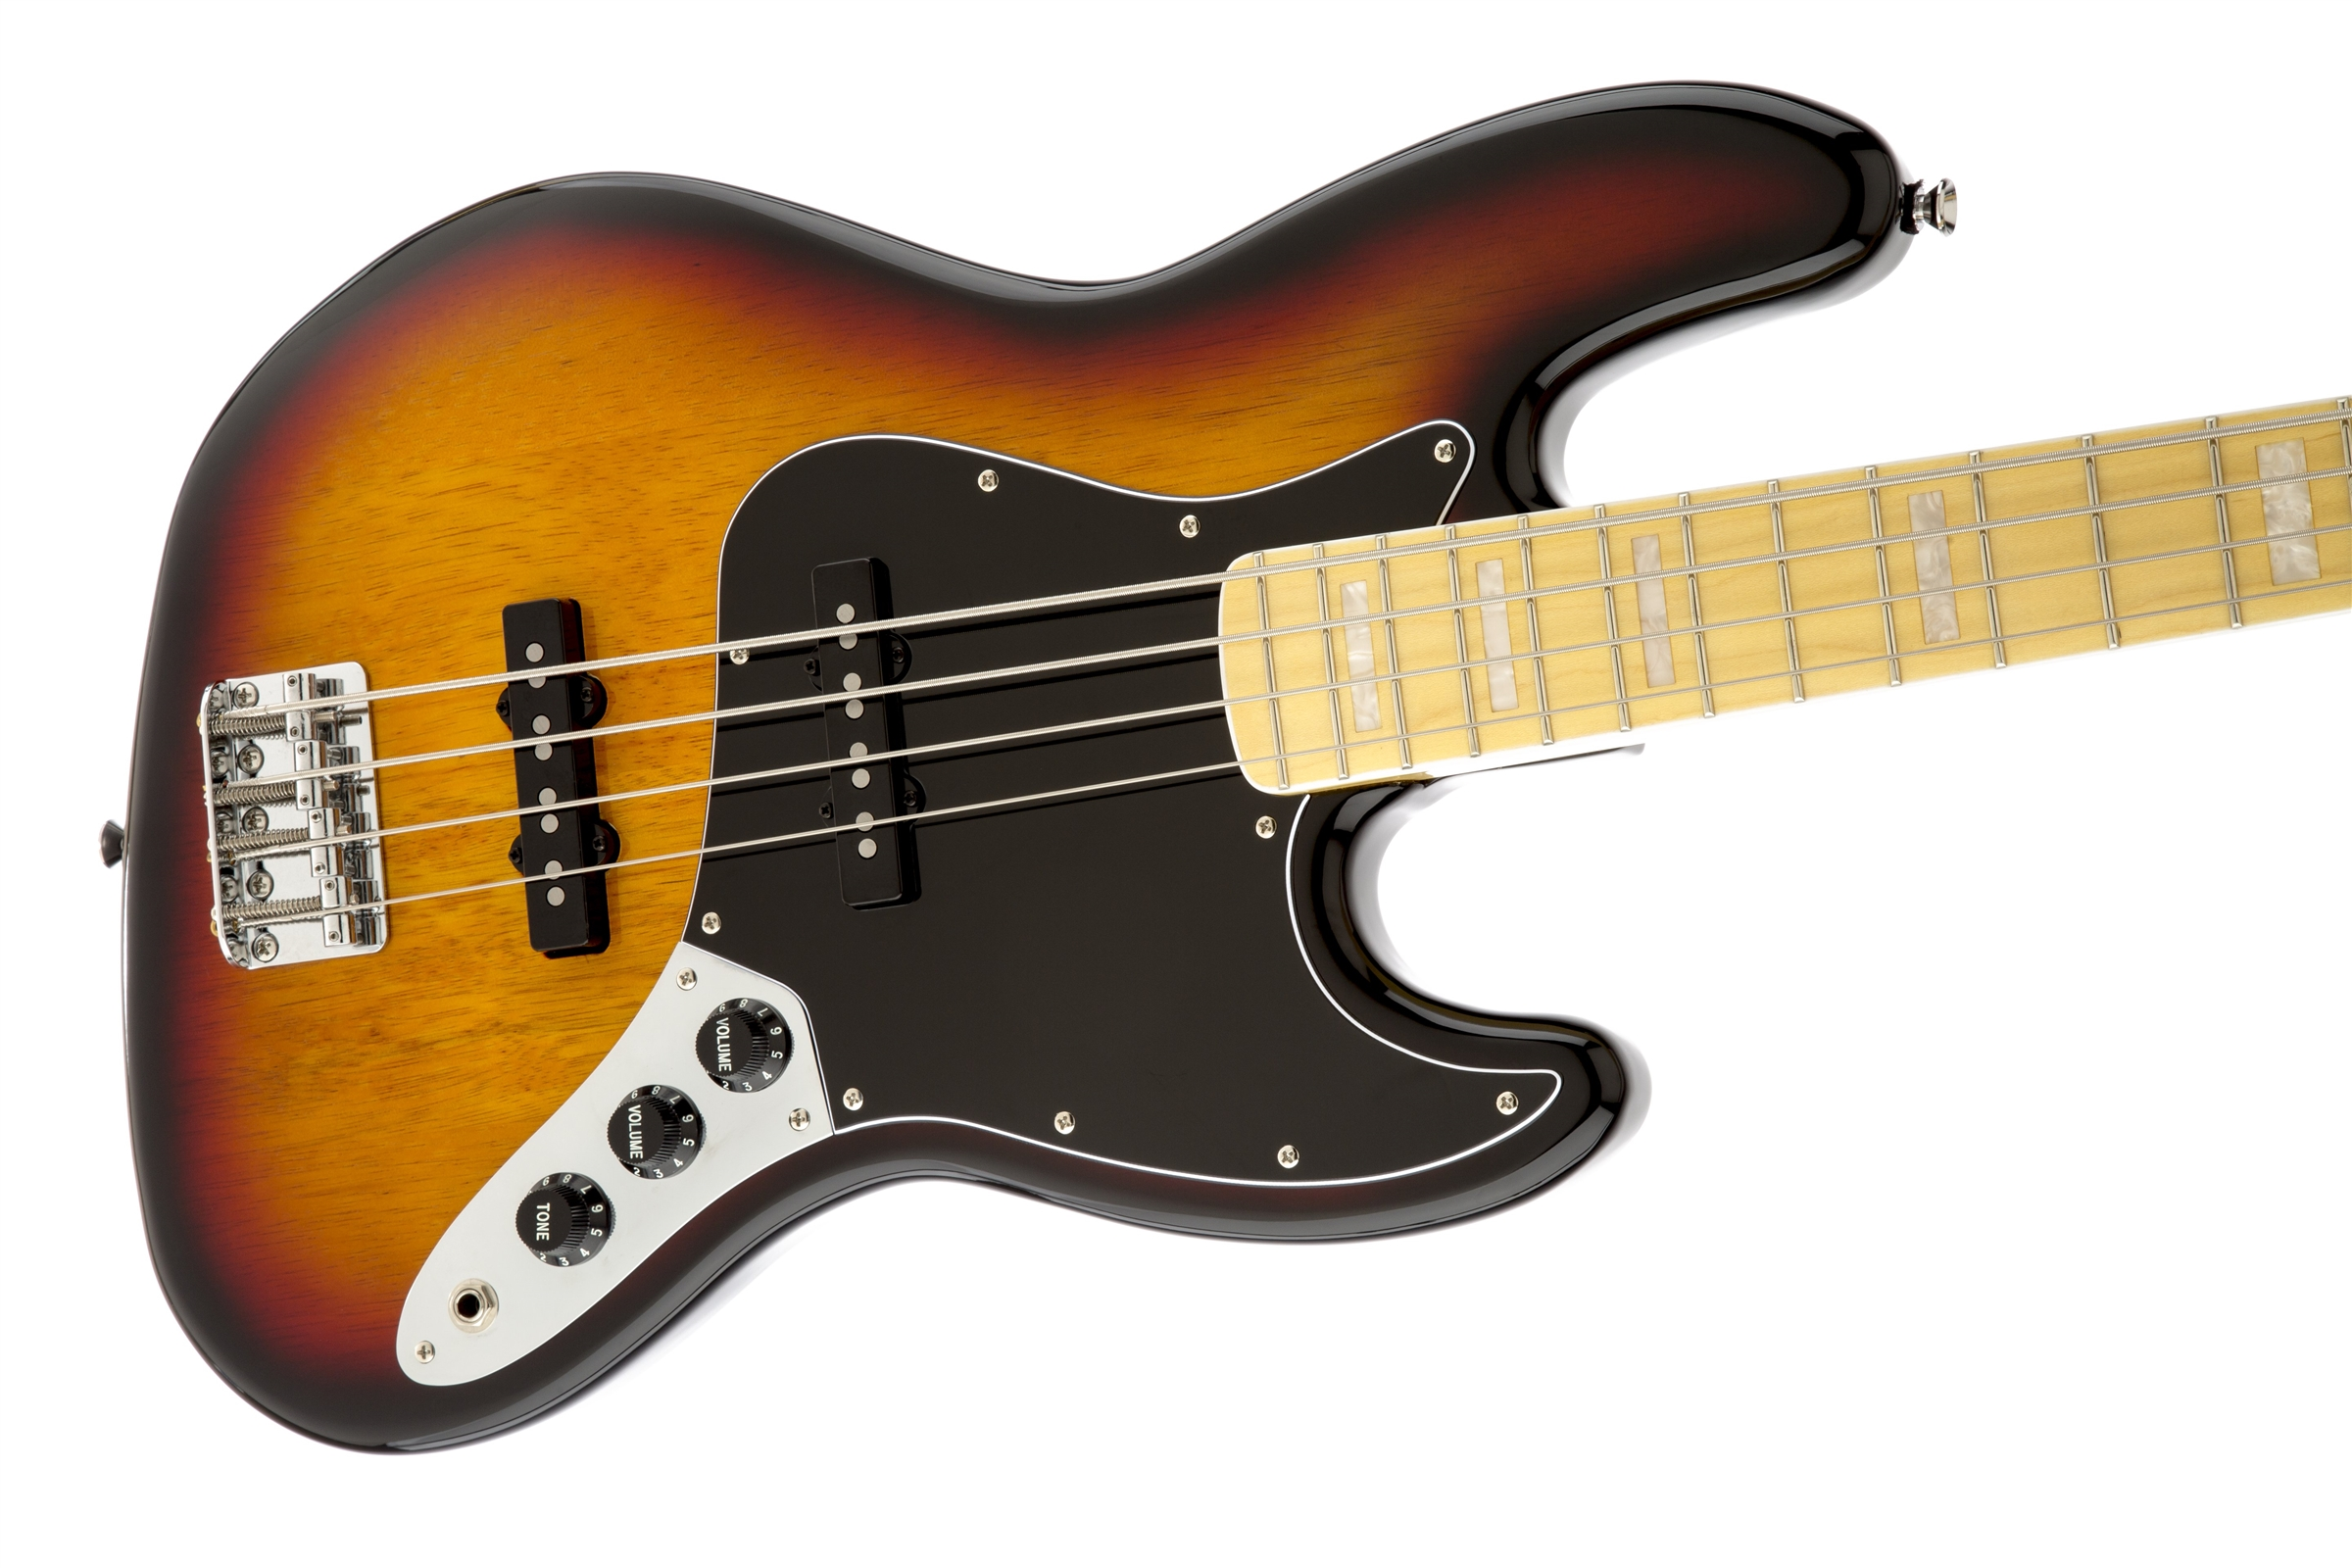 squier vintage modified jazz bass 39 77 maple fingerboard 3 color sunburst squier bass guitars. Black Bedroom Furniture Sets. Home Design Ideas